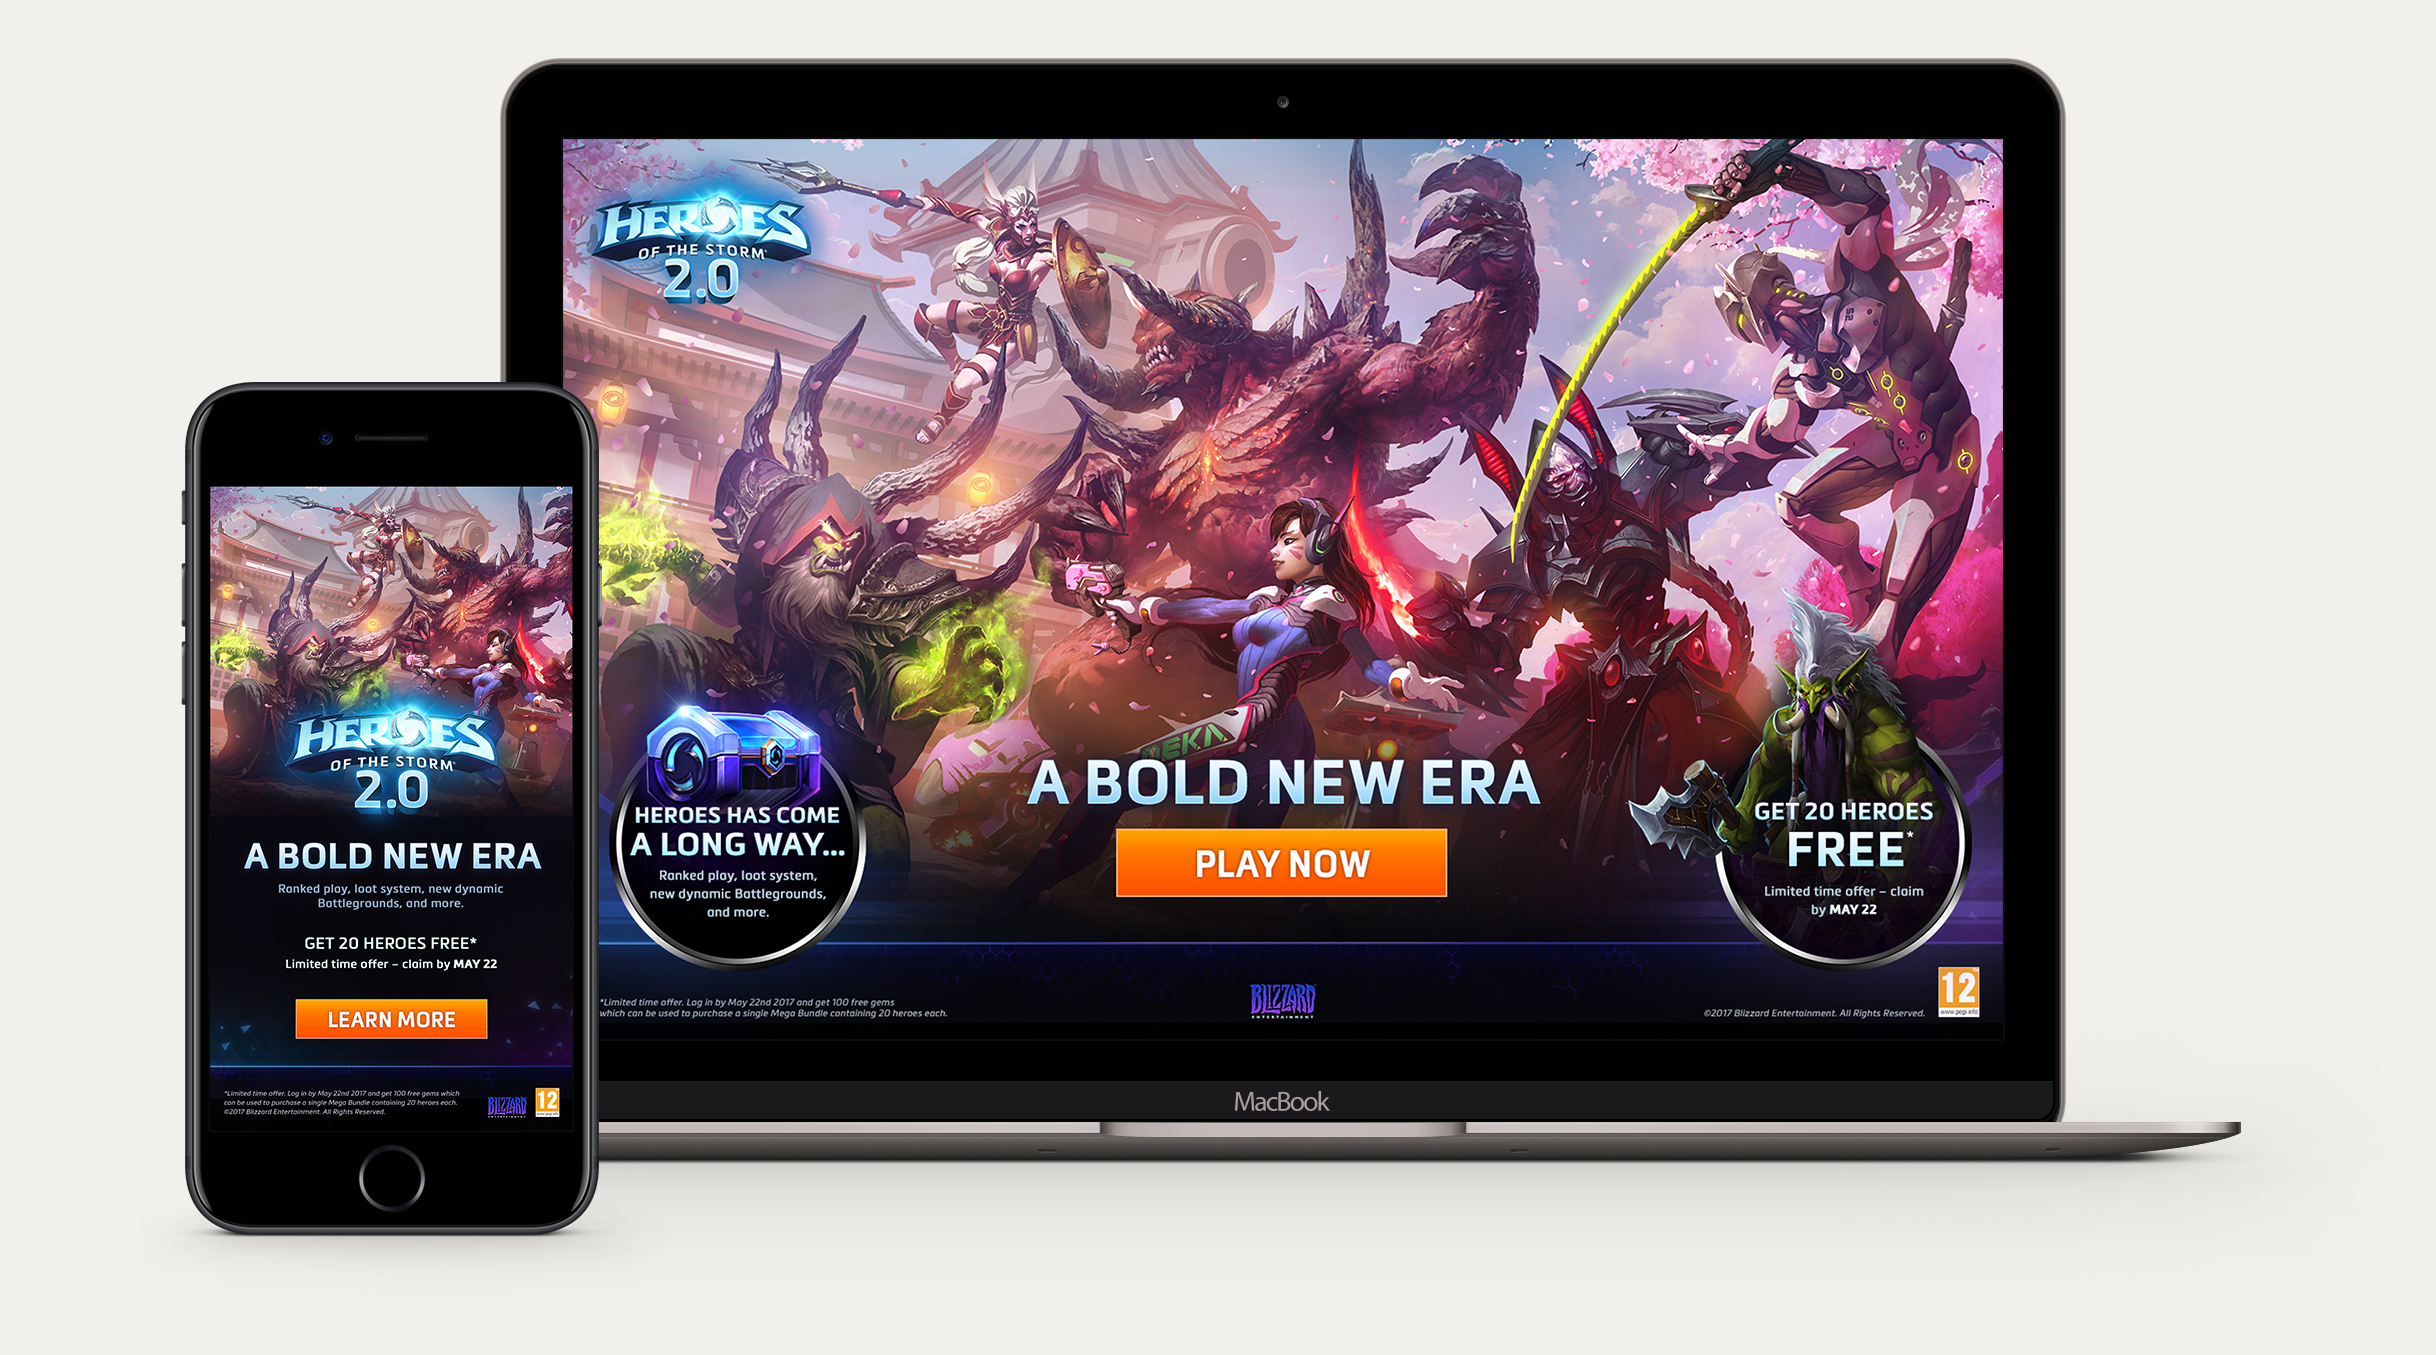 Heroes 2.0 relaunch website game blizzard moba